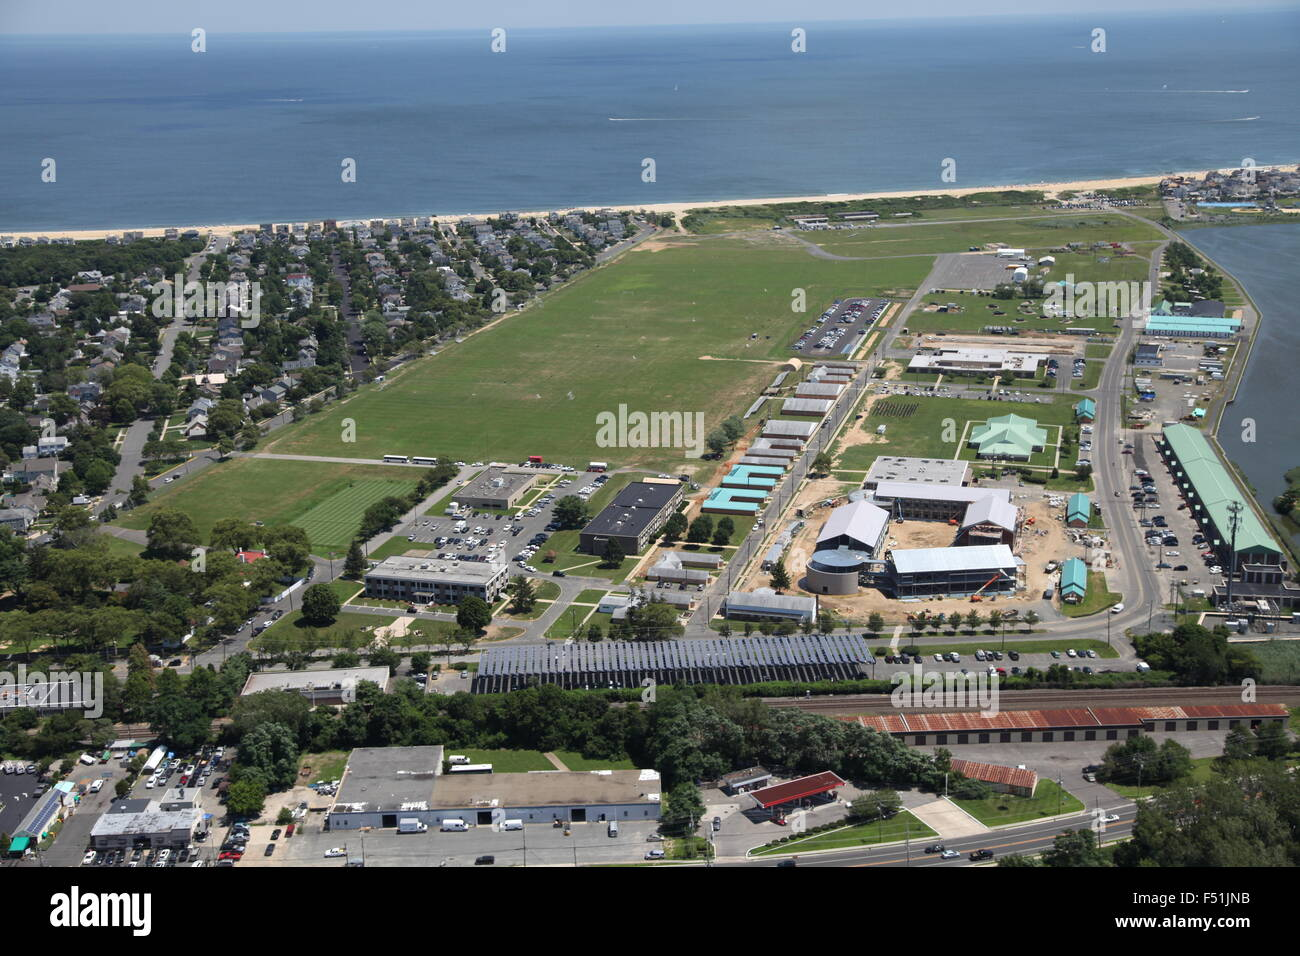 Aerial view of military base at Sea Girt, New Jersey - Stock Image